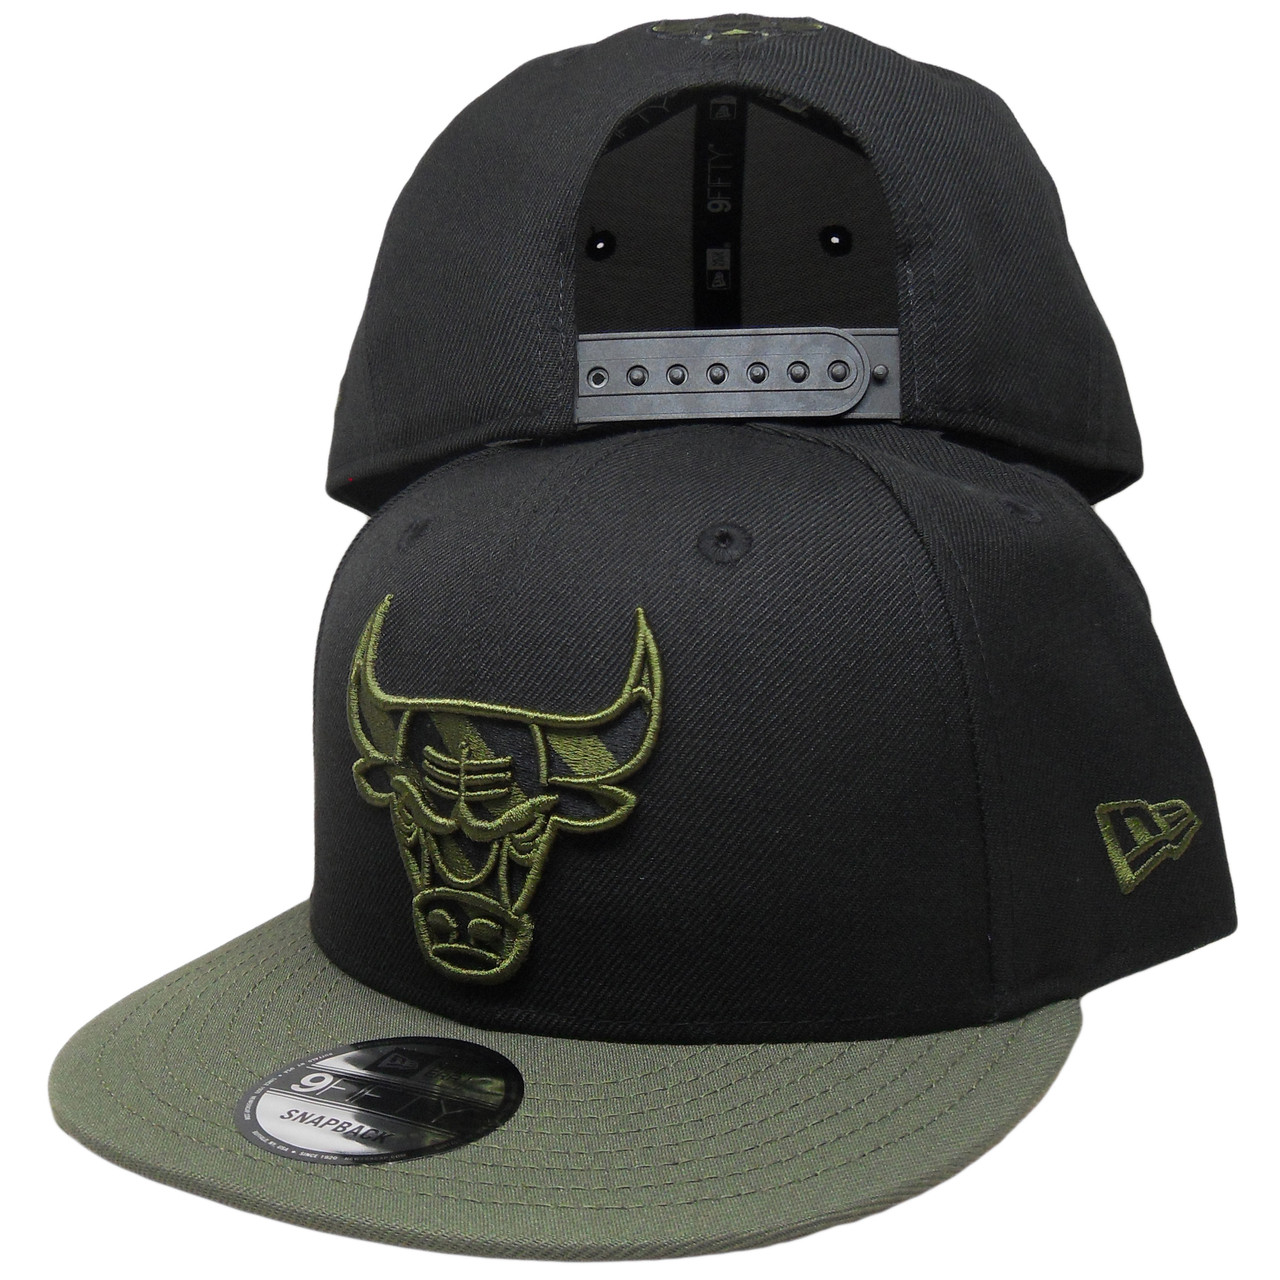 72dfc34e38be85 Chicago Bulls New Era Custom 9Fifty Snapback Hat - Black